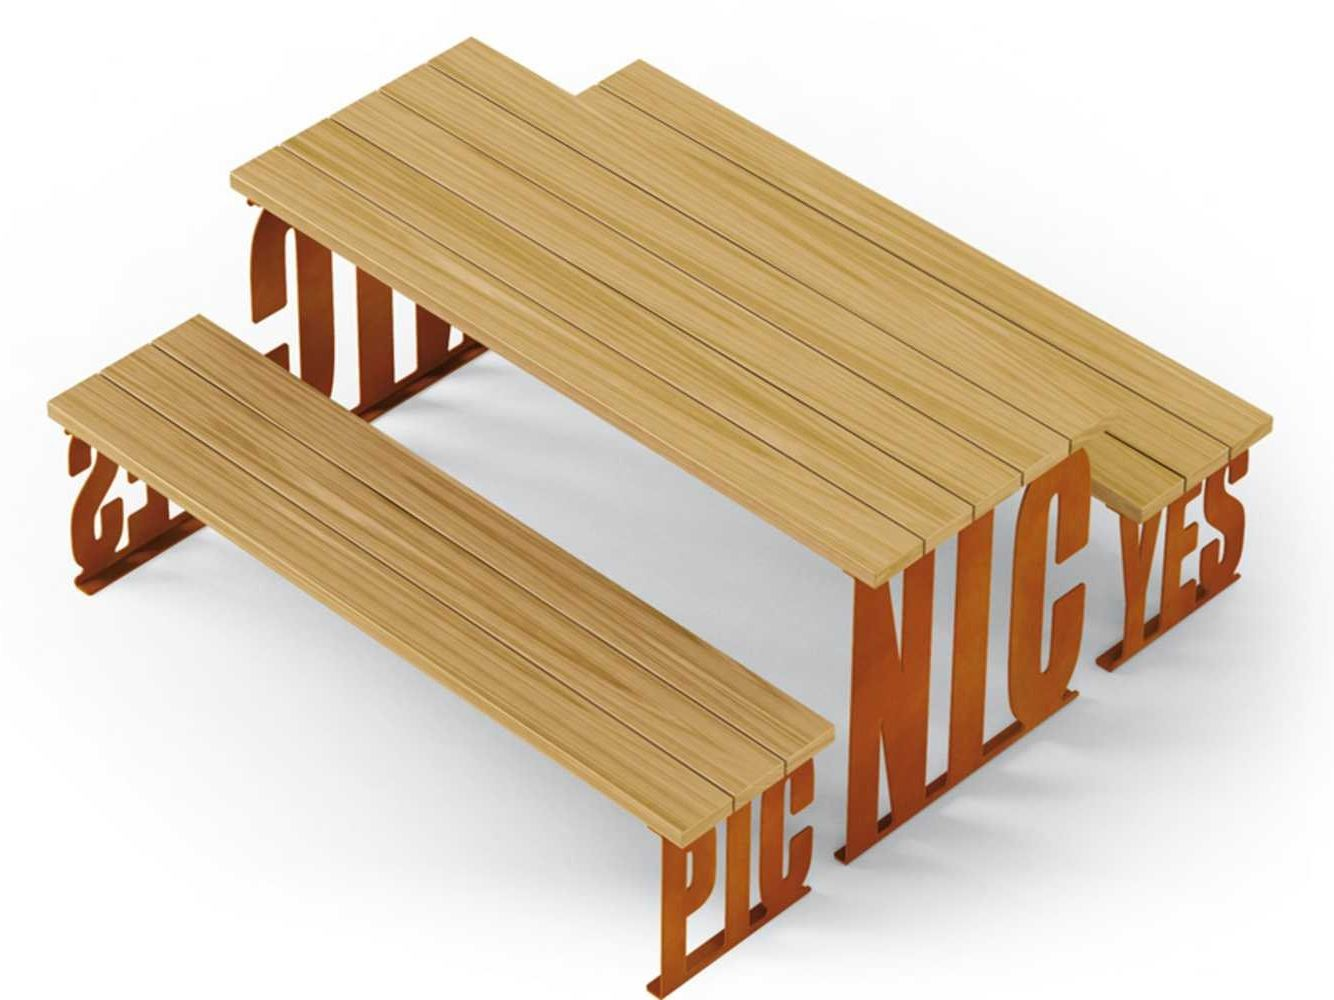 rectangular wooden picnic table pic nic by metalco design. Black Bedroom Furniture Sets. Home Design Ideas